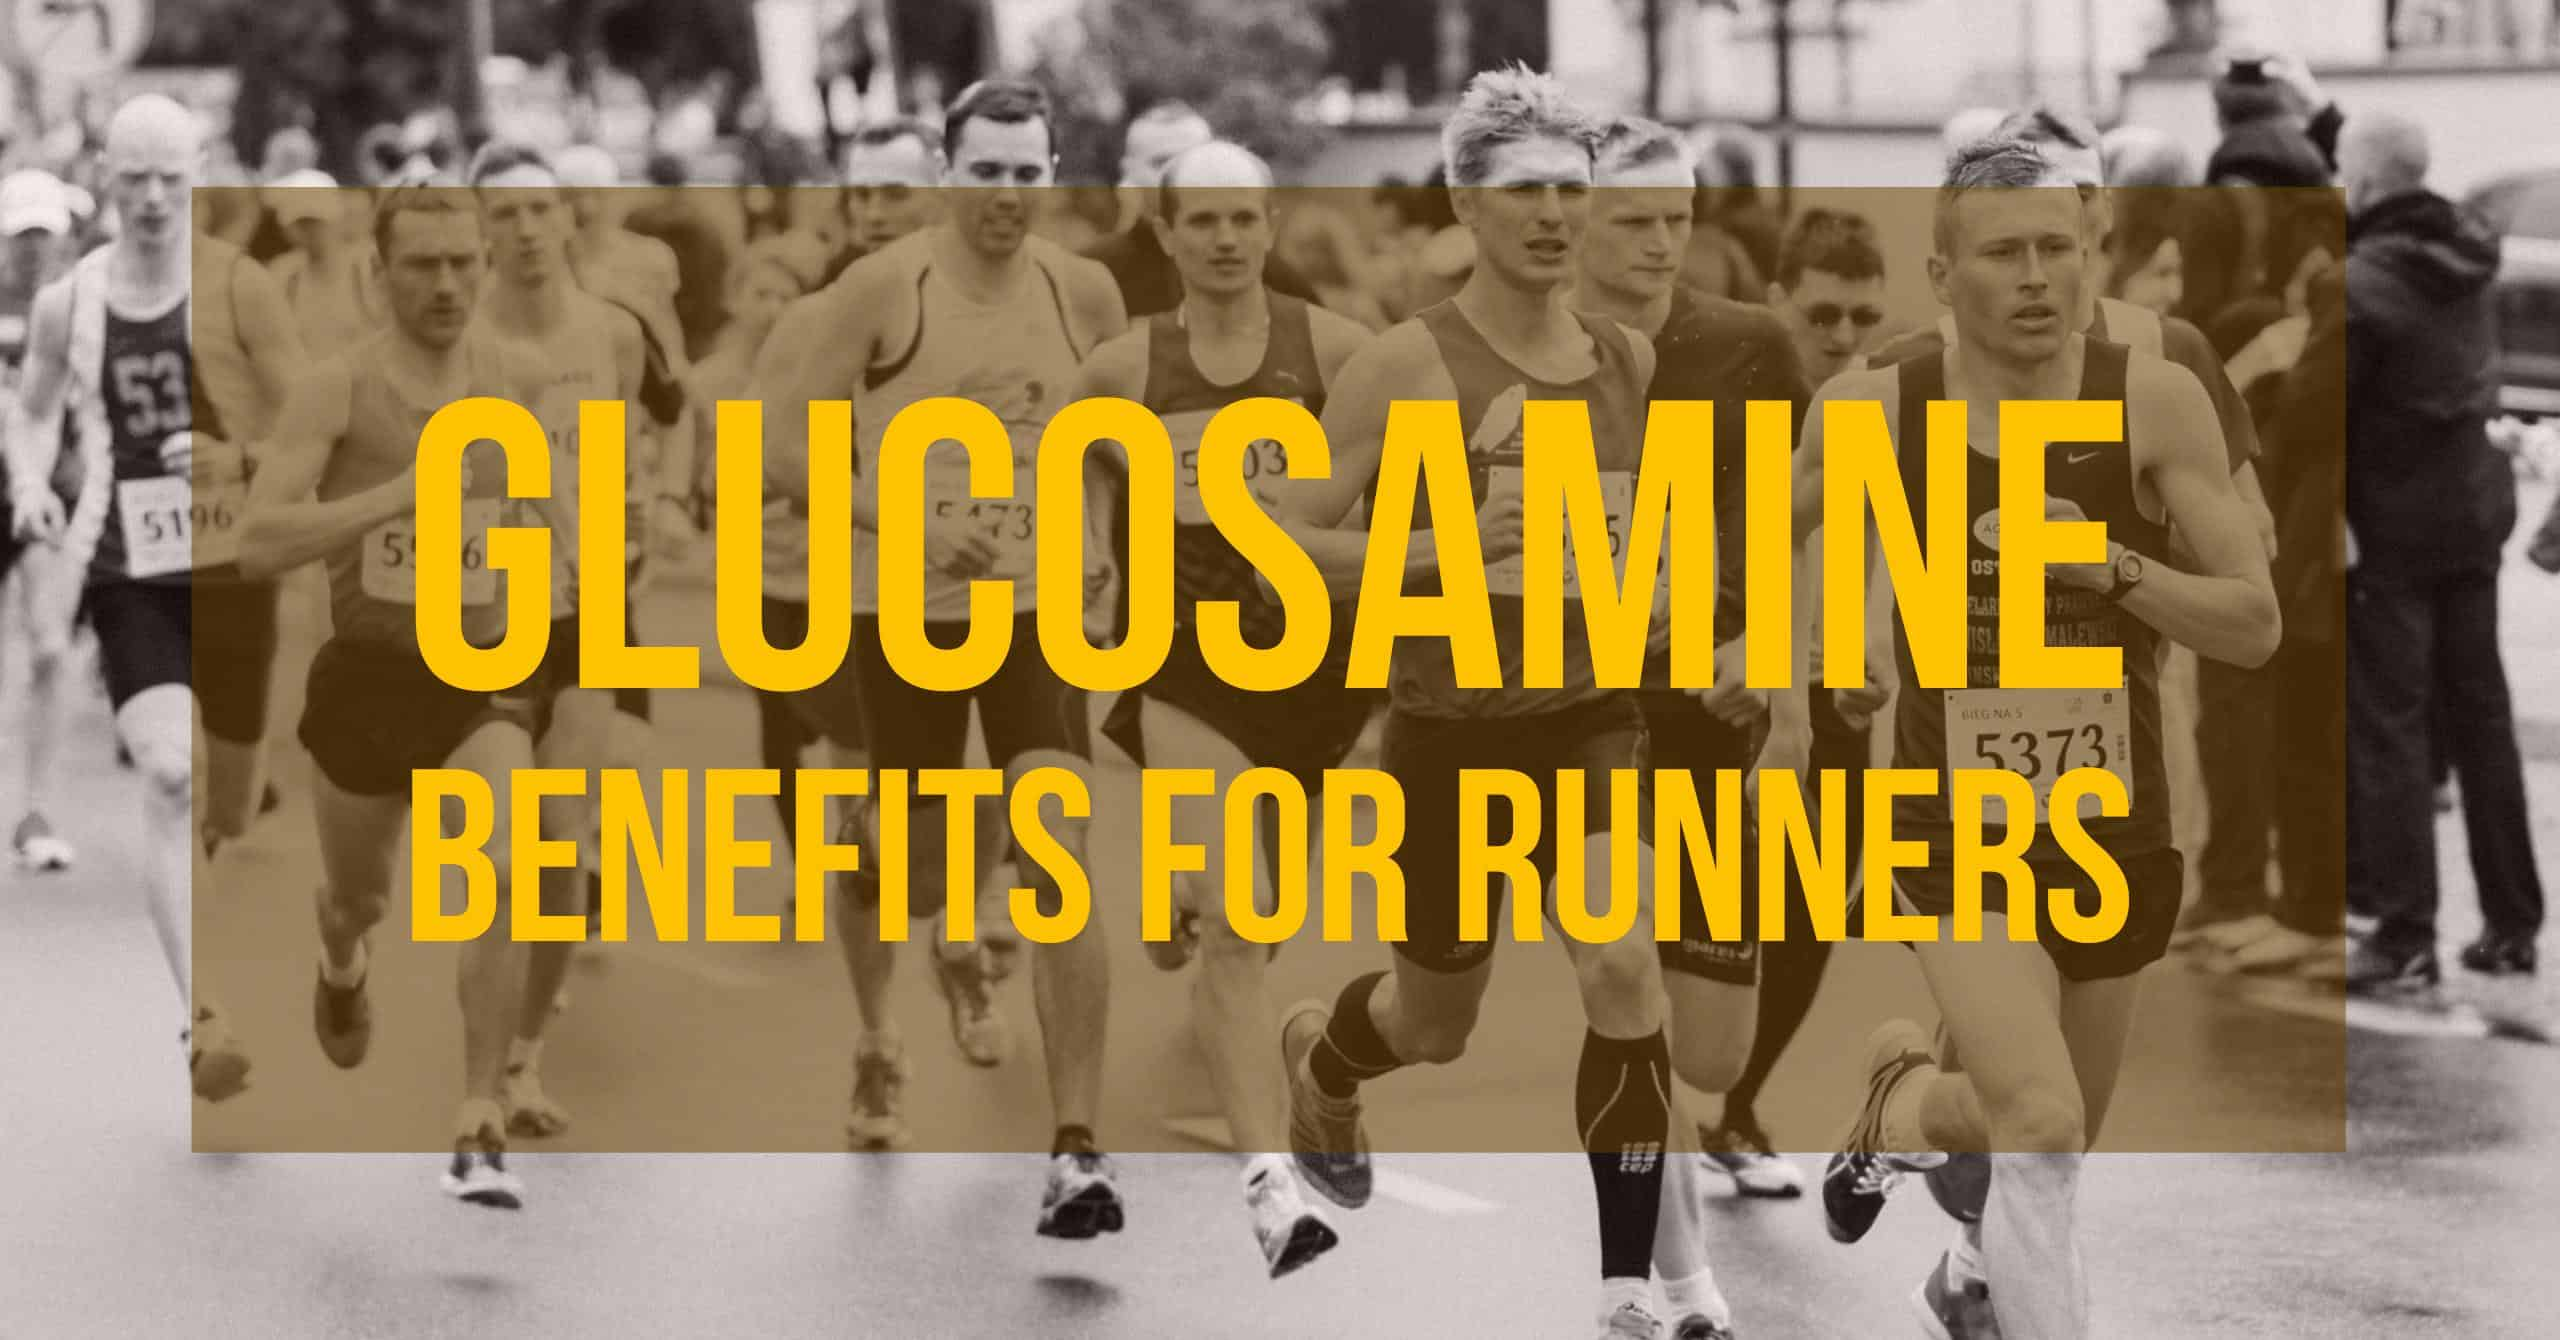 If you have joint pain after running, you might want to try glucosamine. It's been known to relieve joint pain. Here are a few additional glucosamine benefits for runners.